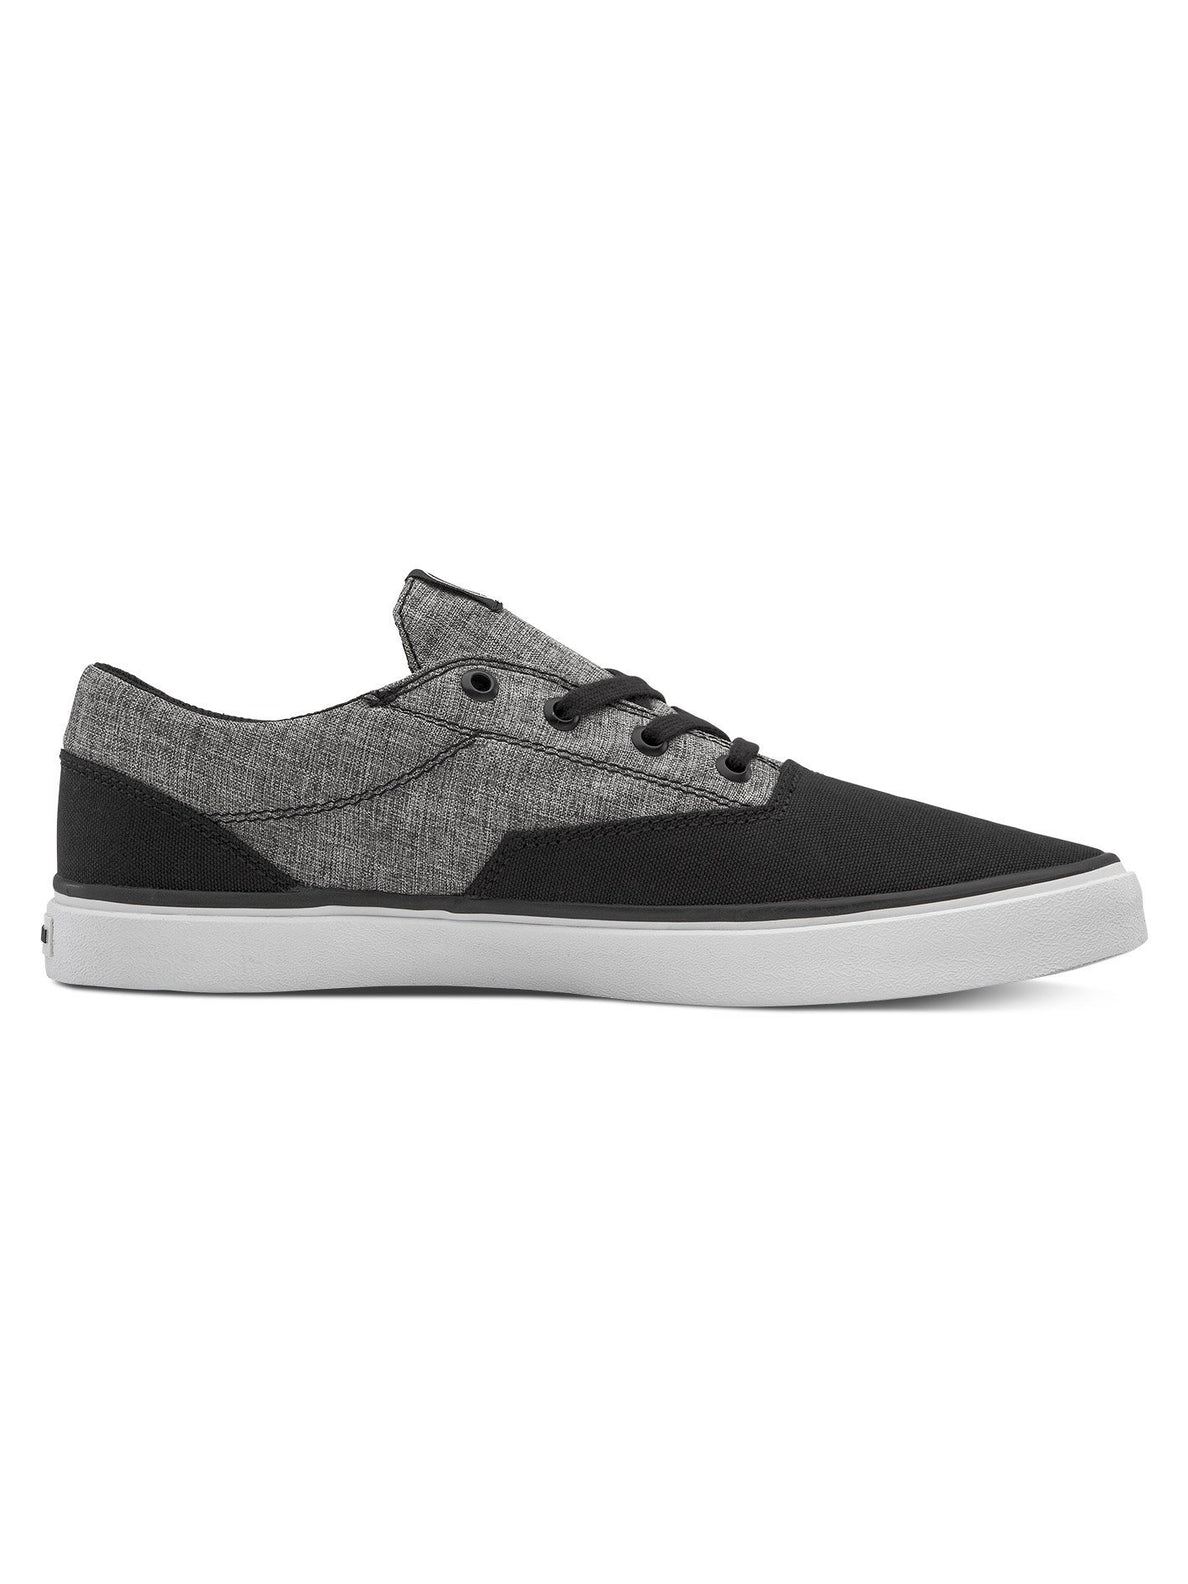 Draw Lo Shoe - Heather Black (V4031710_HBK) [2]